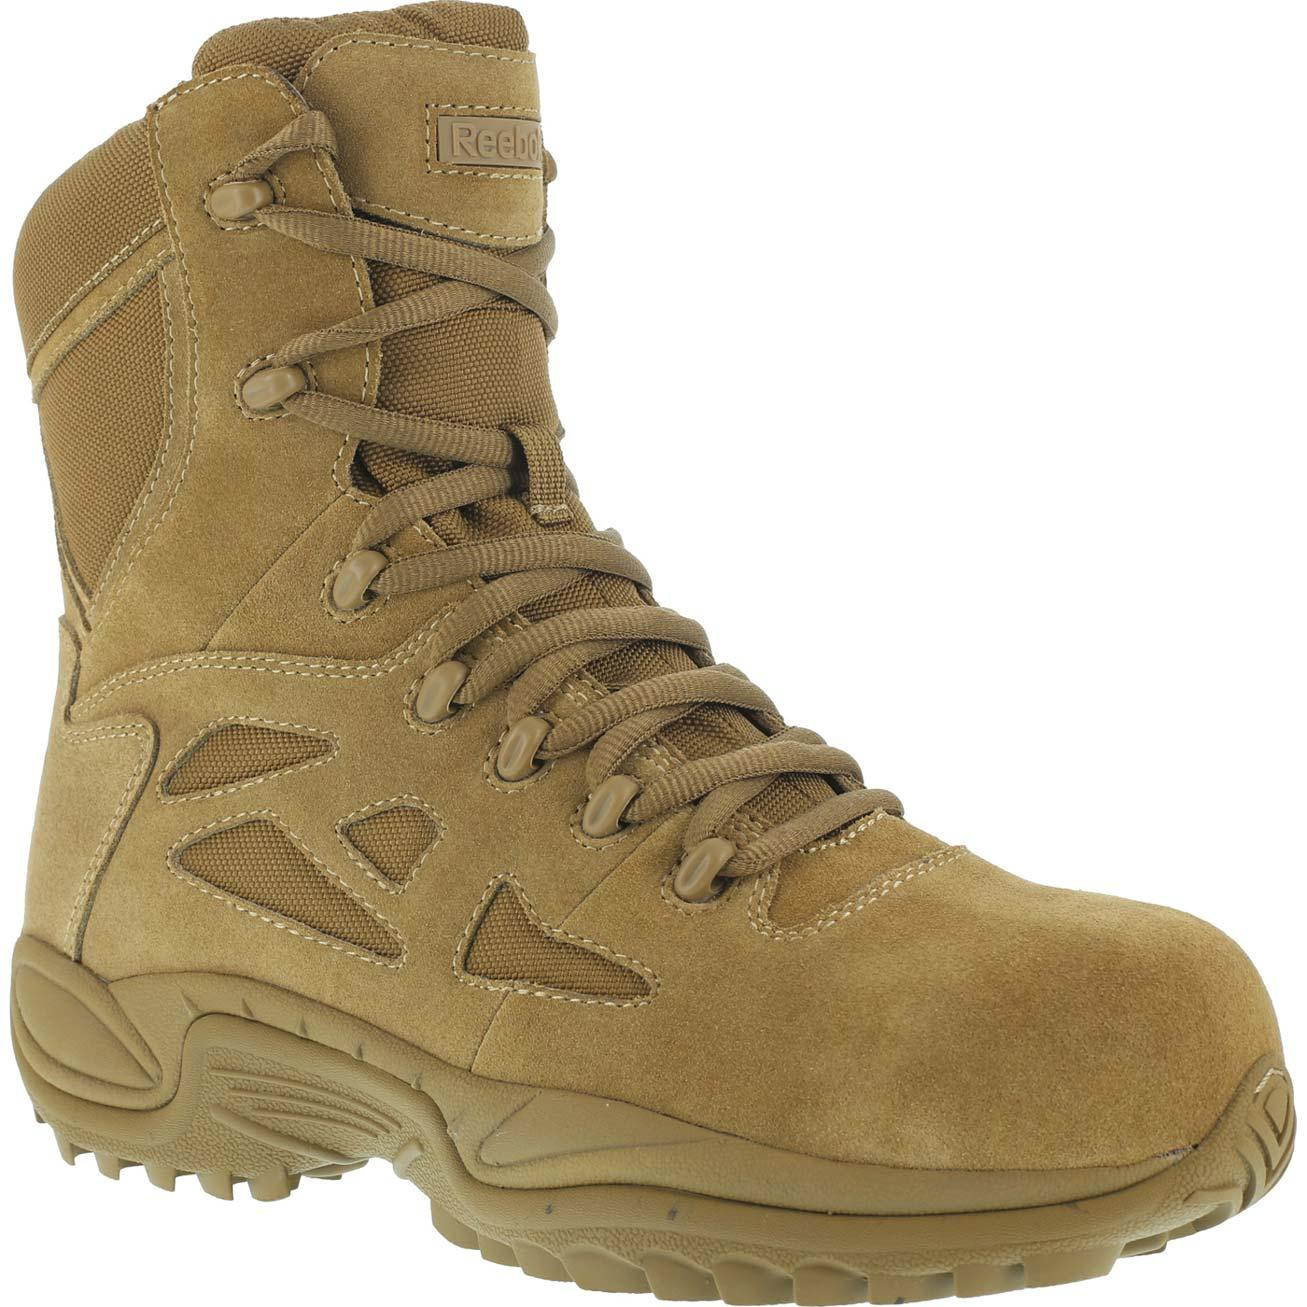 bb65d789054 Reebok Rapid Response Composite Toe Tactical Duty BootReebok Rapid Response  Composite Toe Tactical Duty Boot